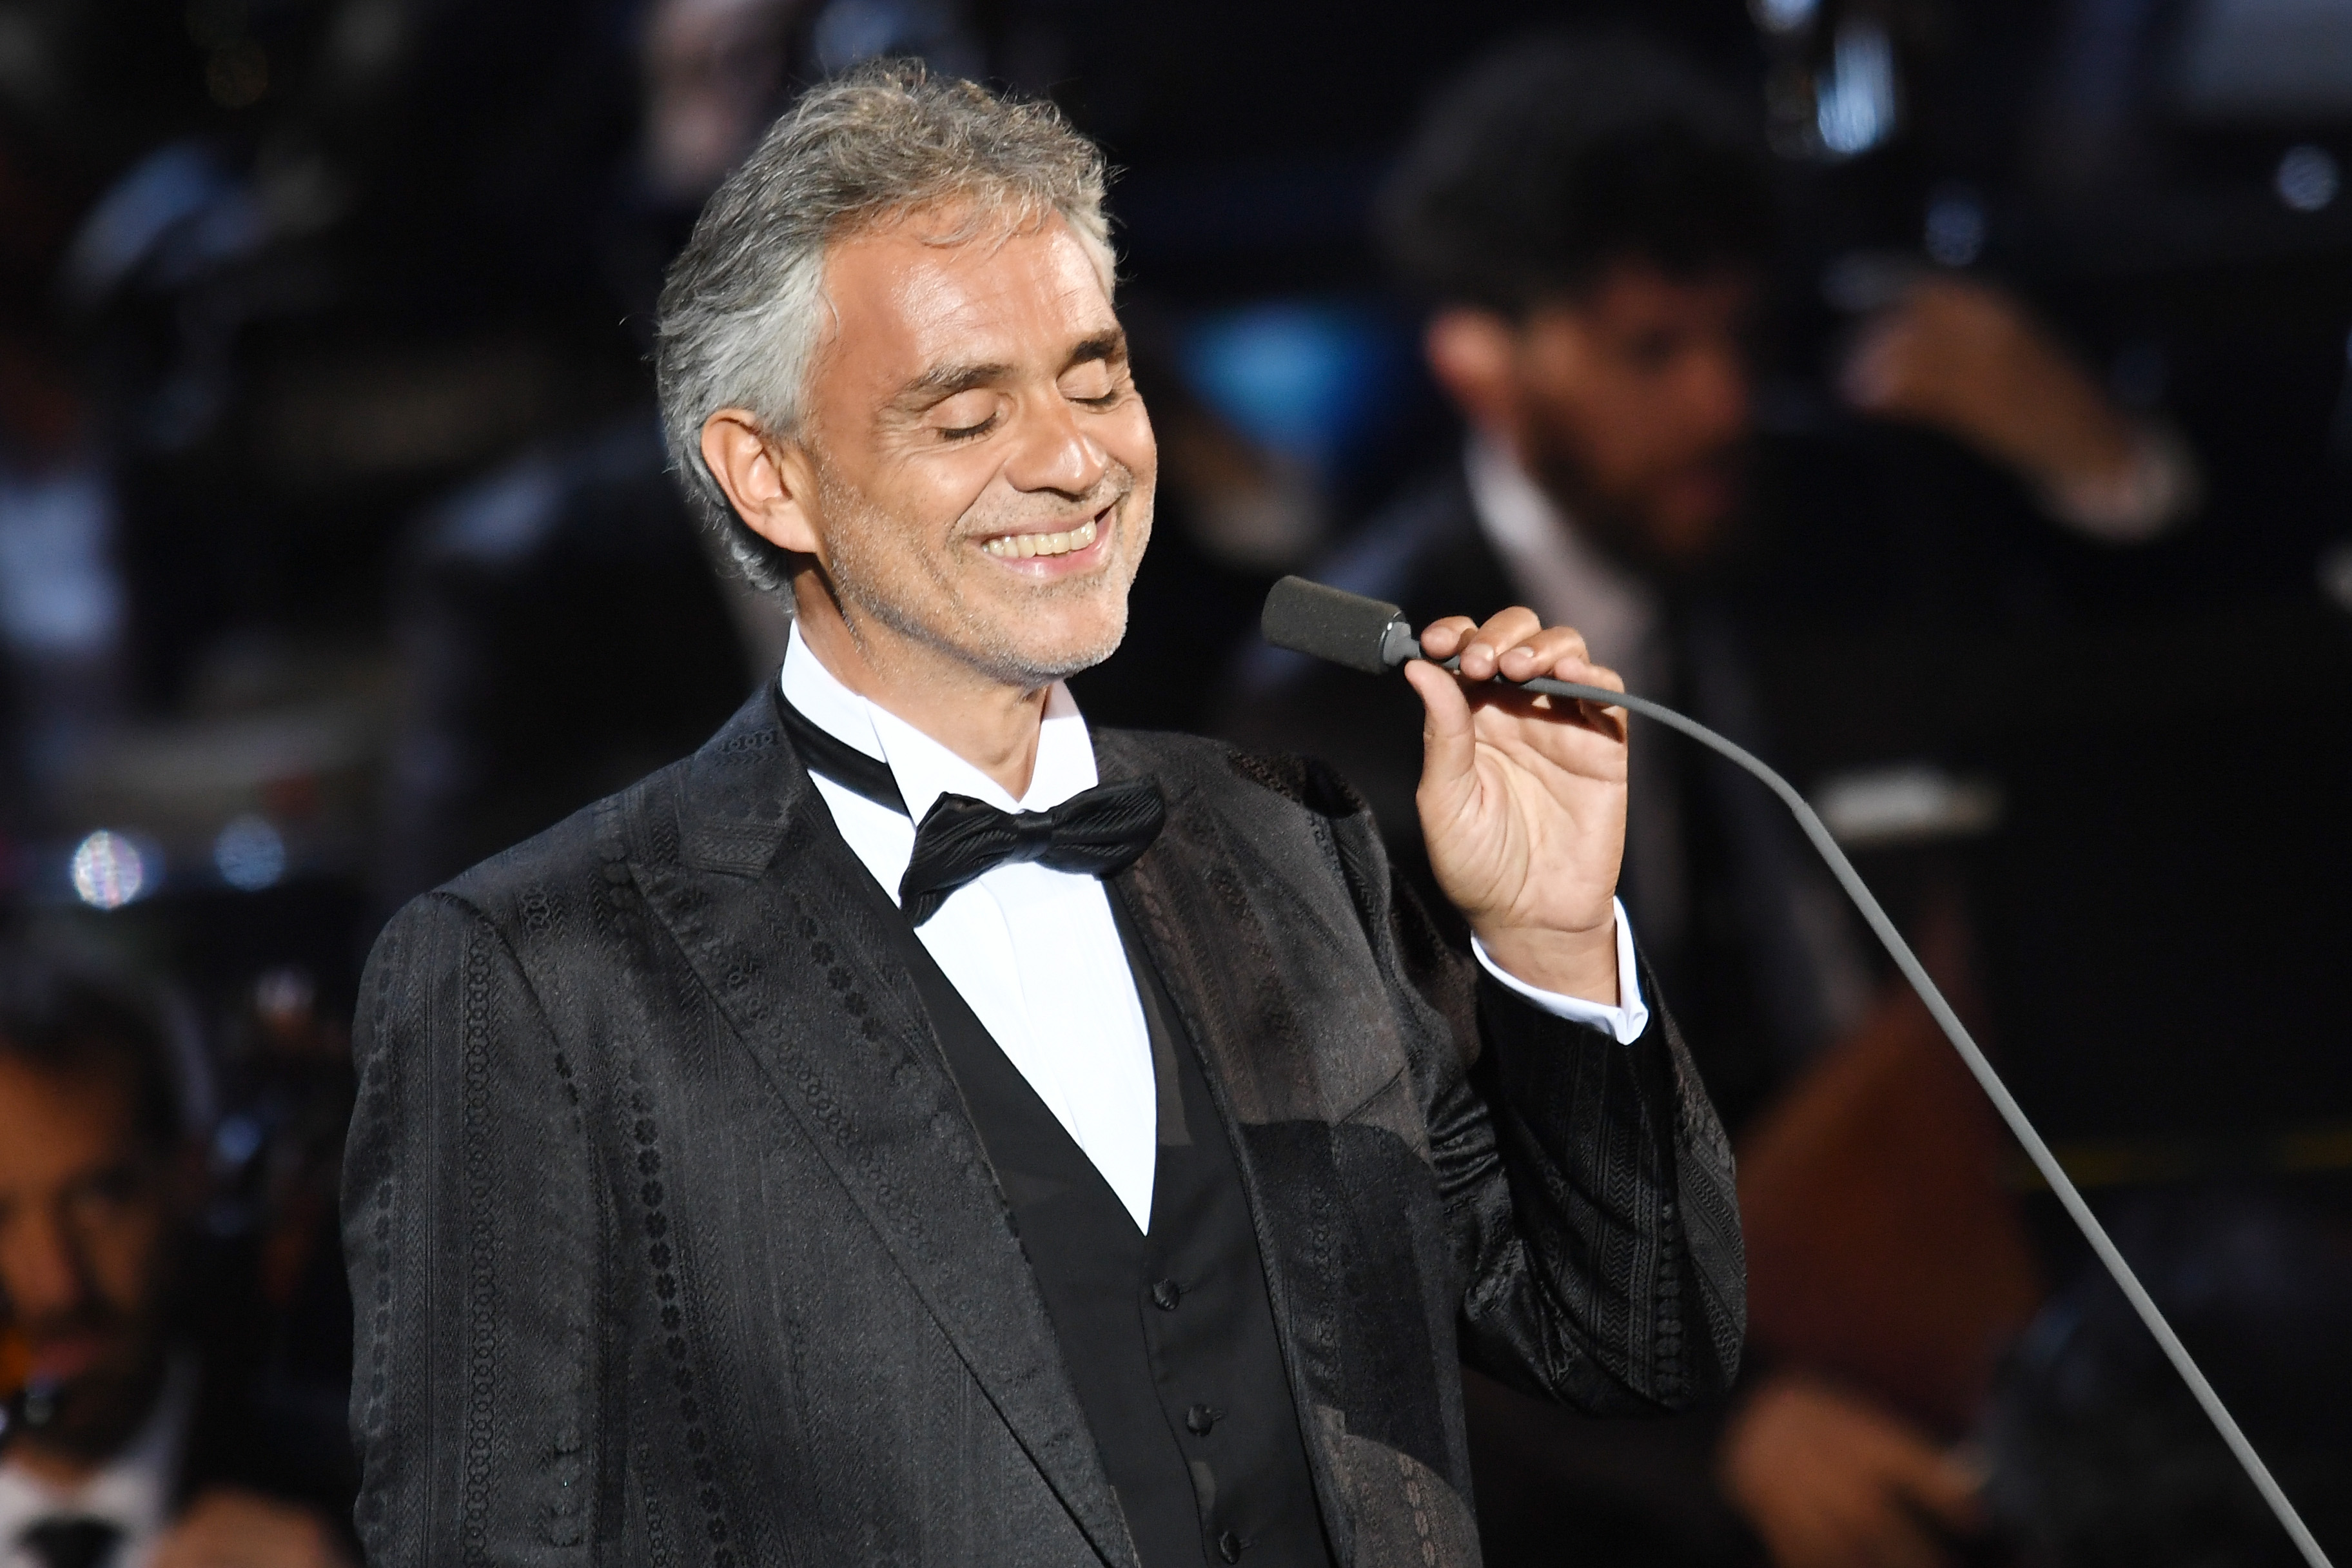 Opera star Andrea Bocelli gives blood for virus research